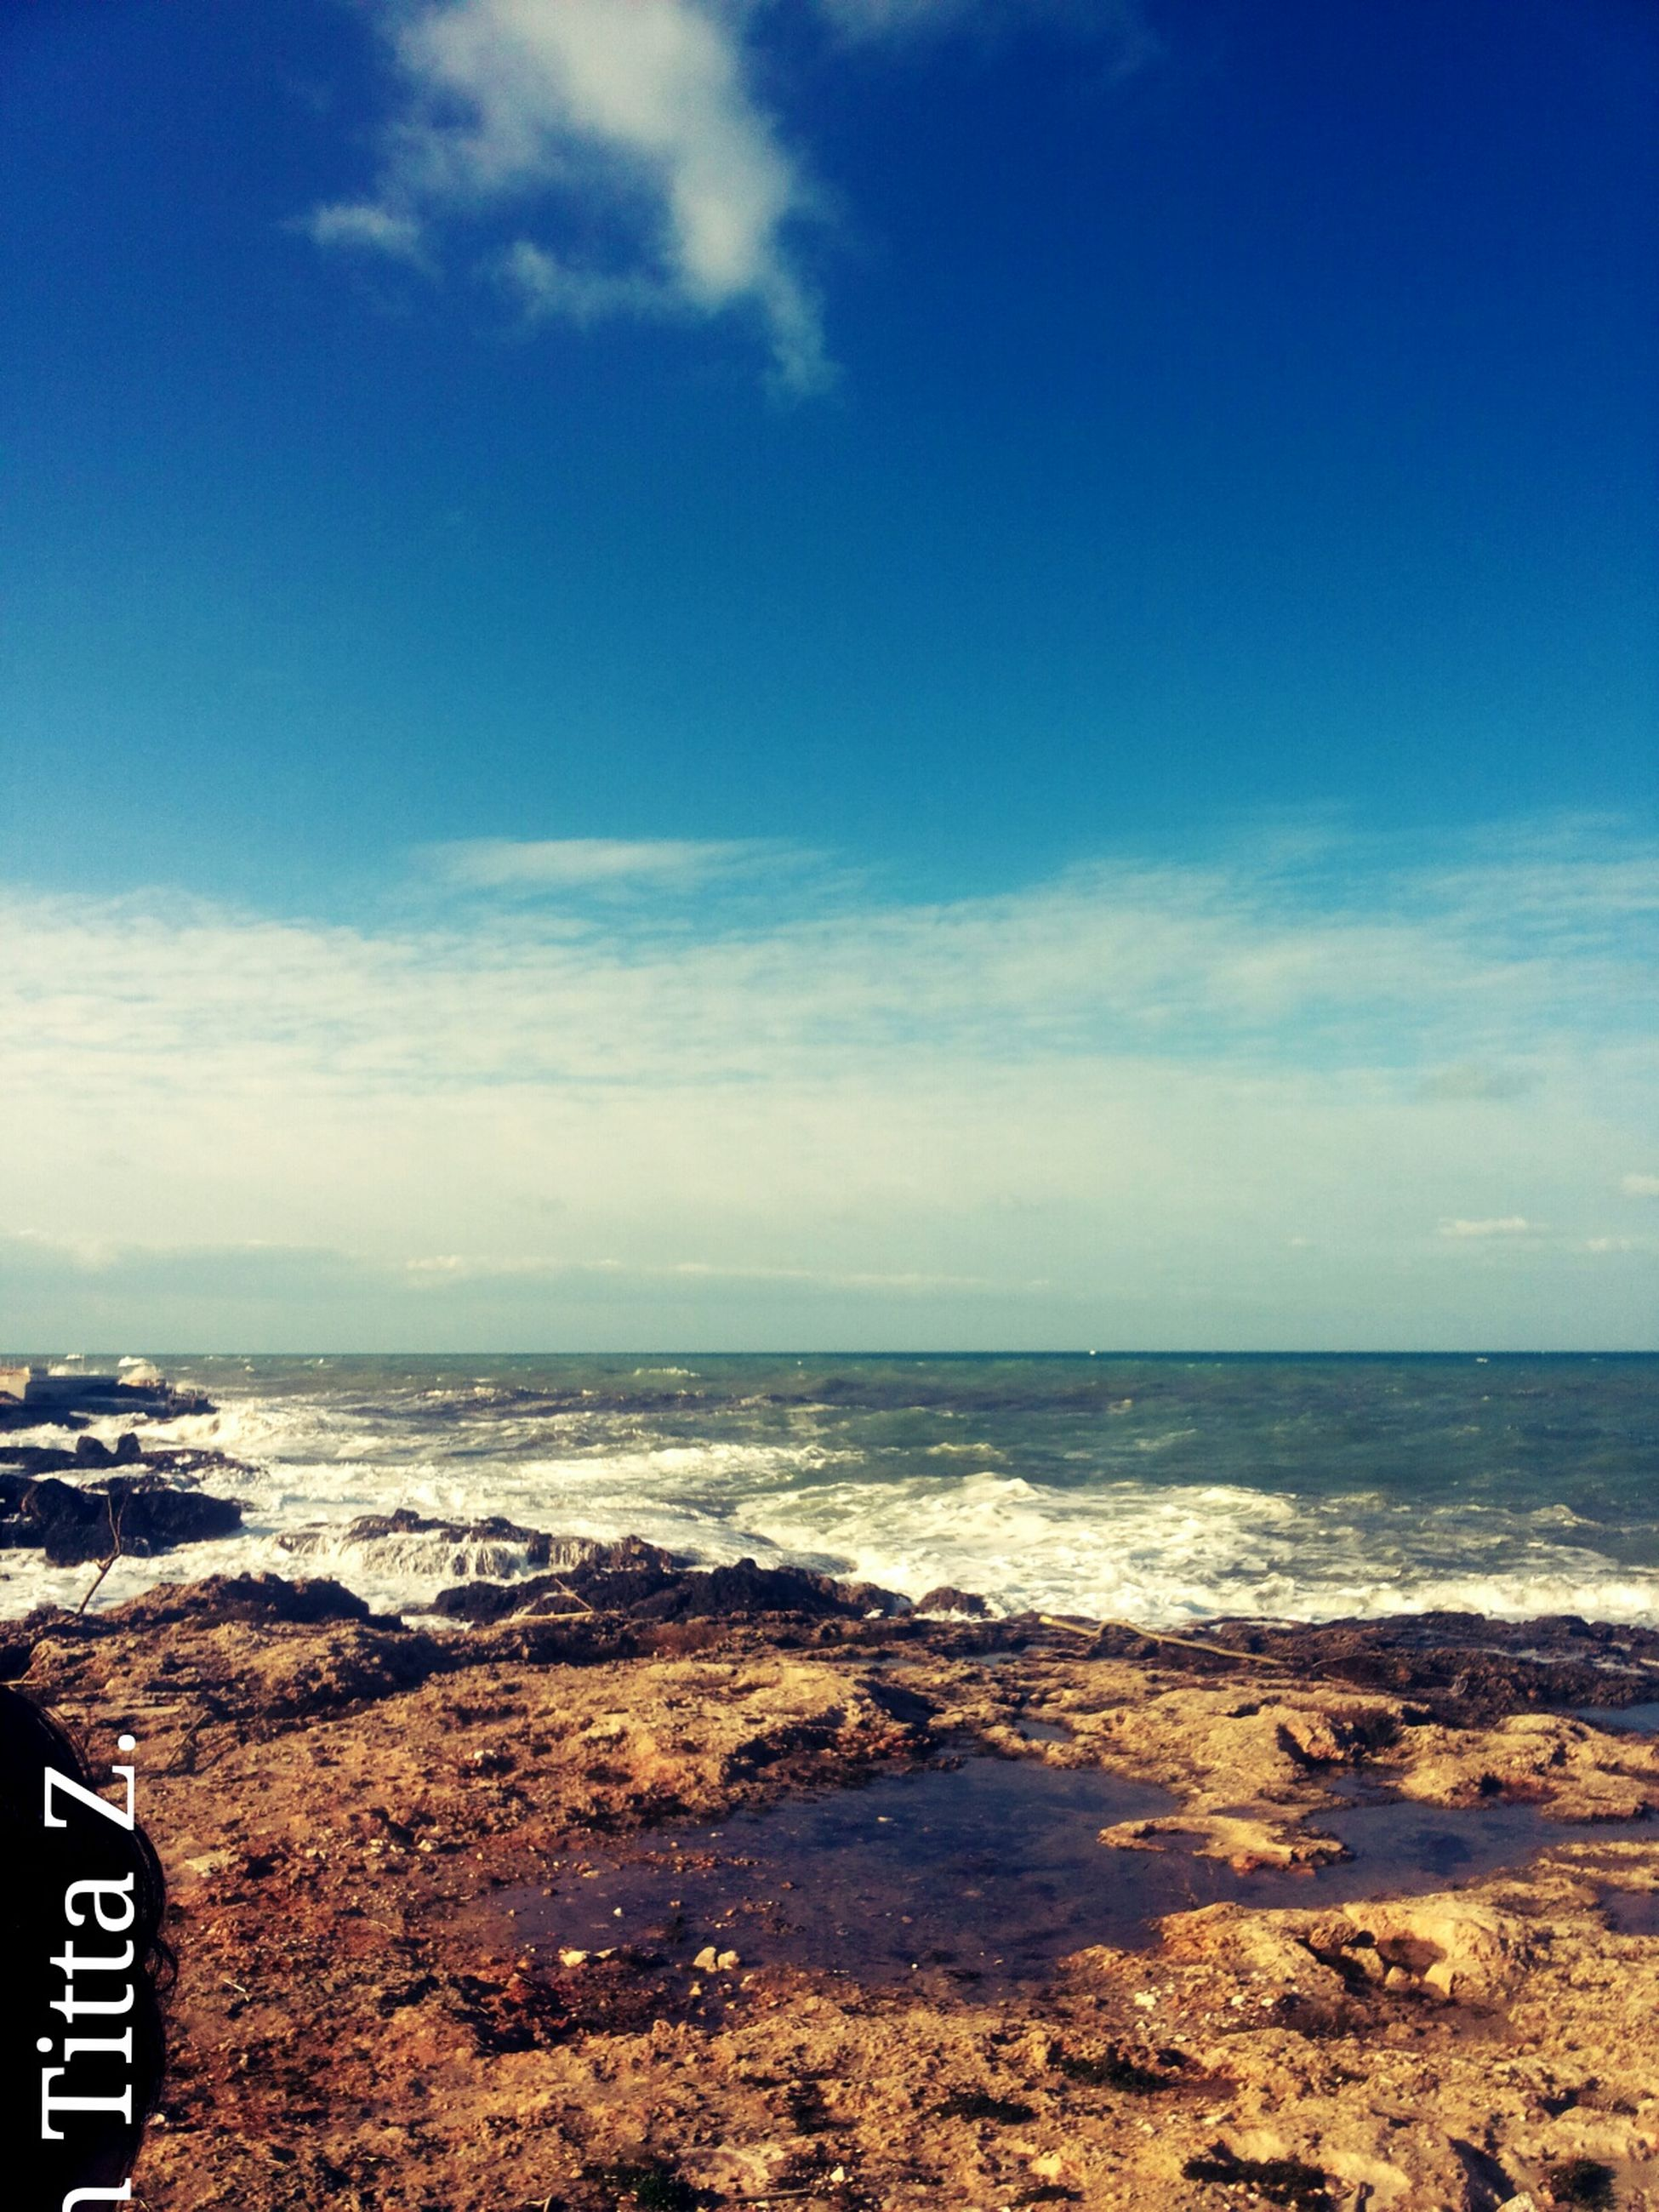 sea, sky, horizon over water, beach, scenics, water, blue, tranquil scene, tranquility, shore, beauty in nature, cloud - sky, nature, cloud, idyllic, day, sand, outdoors, no people, remote